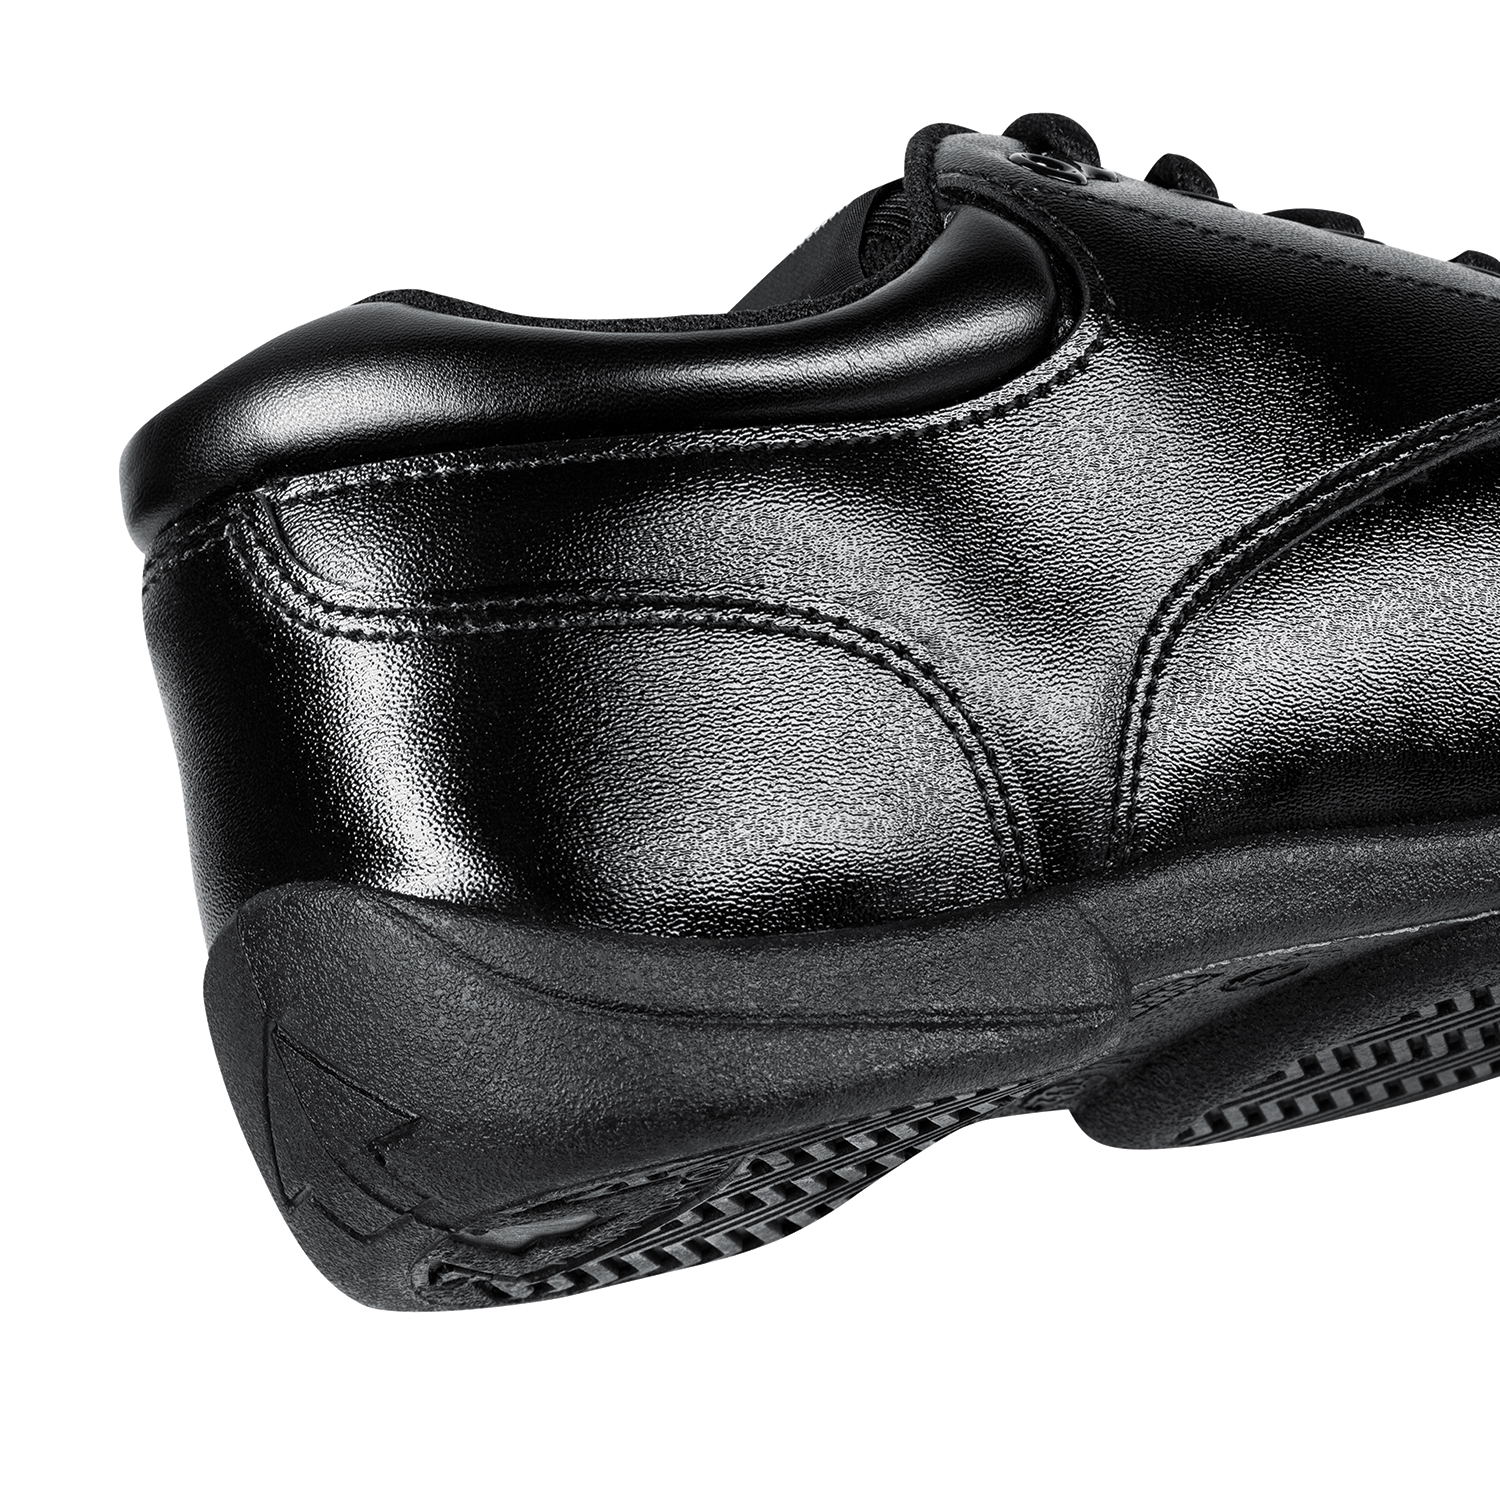 Drillmaster Super Band Shoes